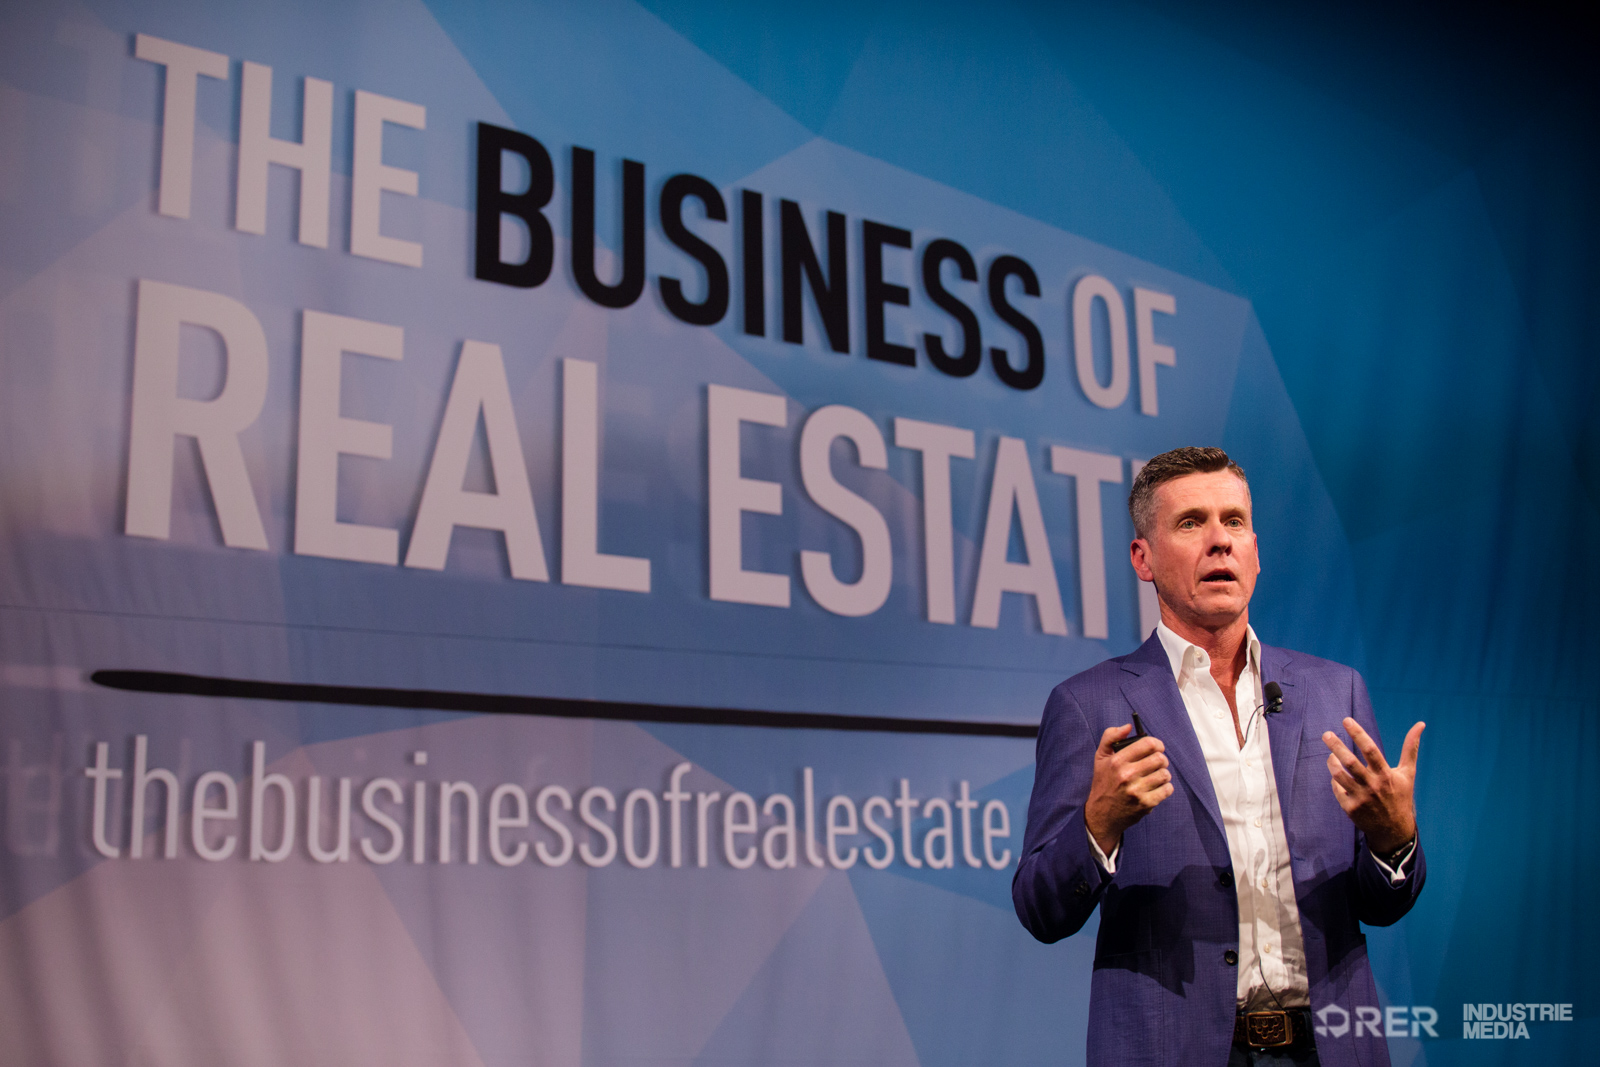 https://www.thebusinessofrealestate.com.au/wp-content/uploads/2016/09/RER_BUSINESS_OF_REAL_ESTATE-98.jpg